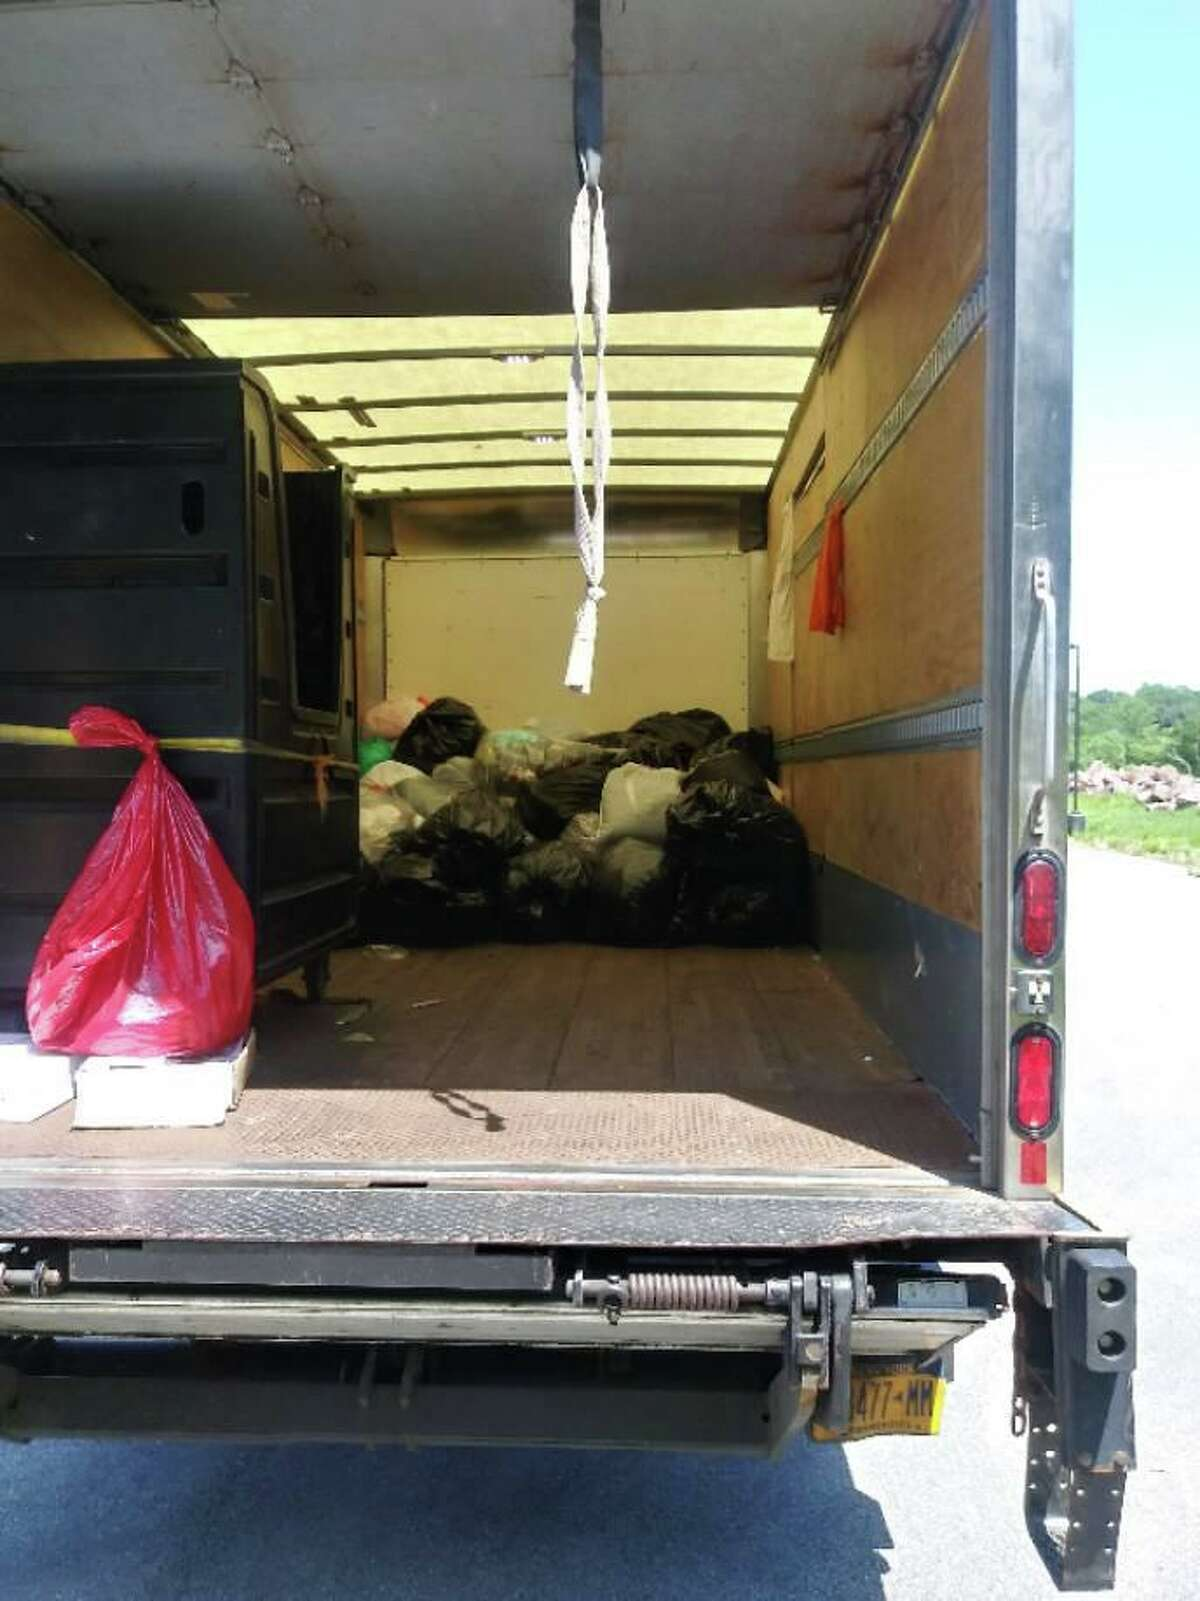 Stamford worked with HELPSY to hold a clothing drive at the Scofield Yard Recycling Center on June 5, 2021.